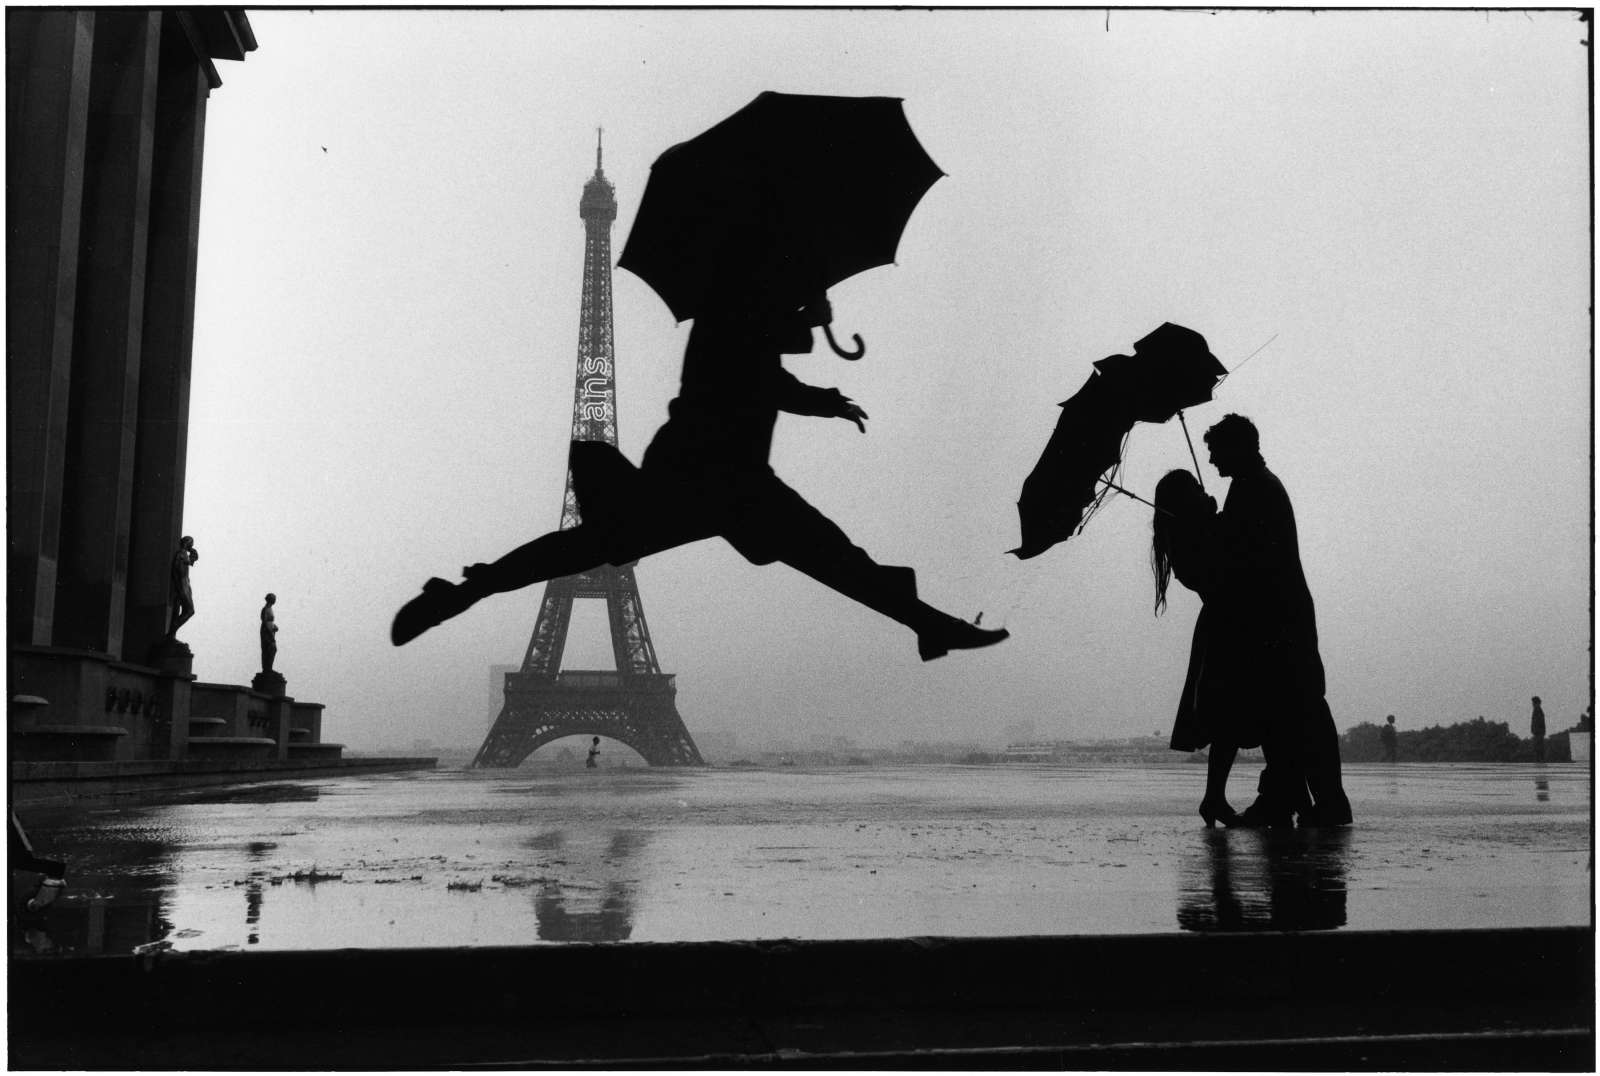 Elliott Erwitt, Paris, (Man Jumping), 1989